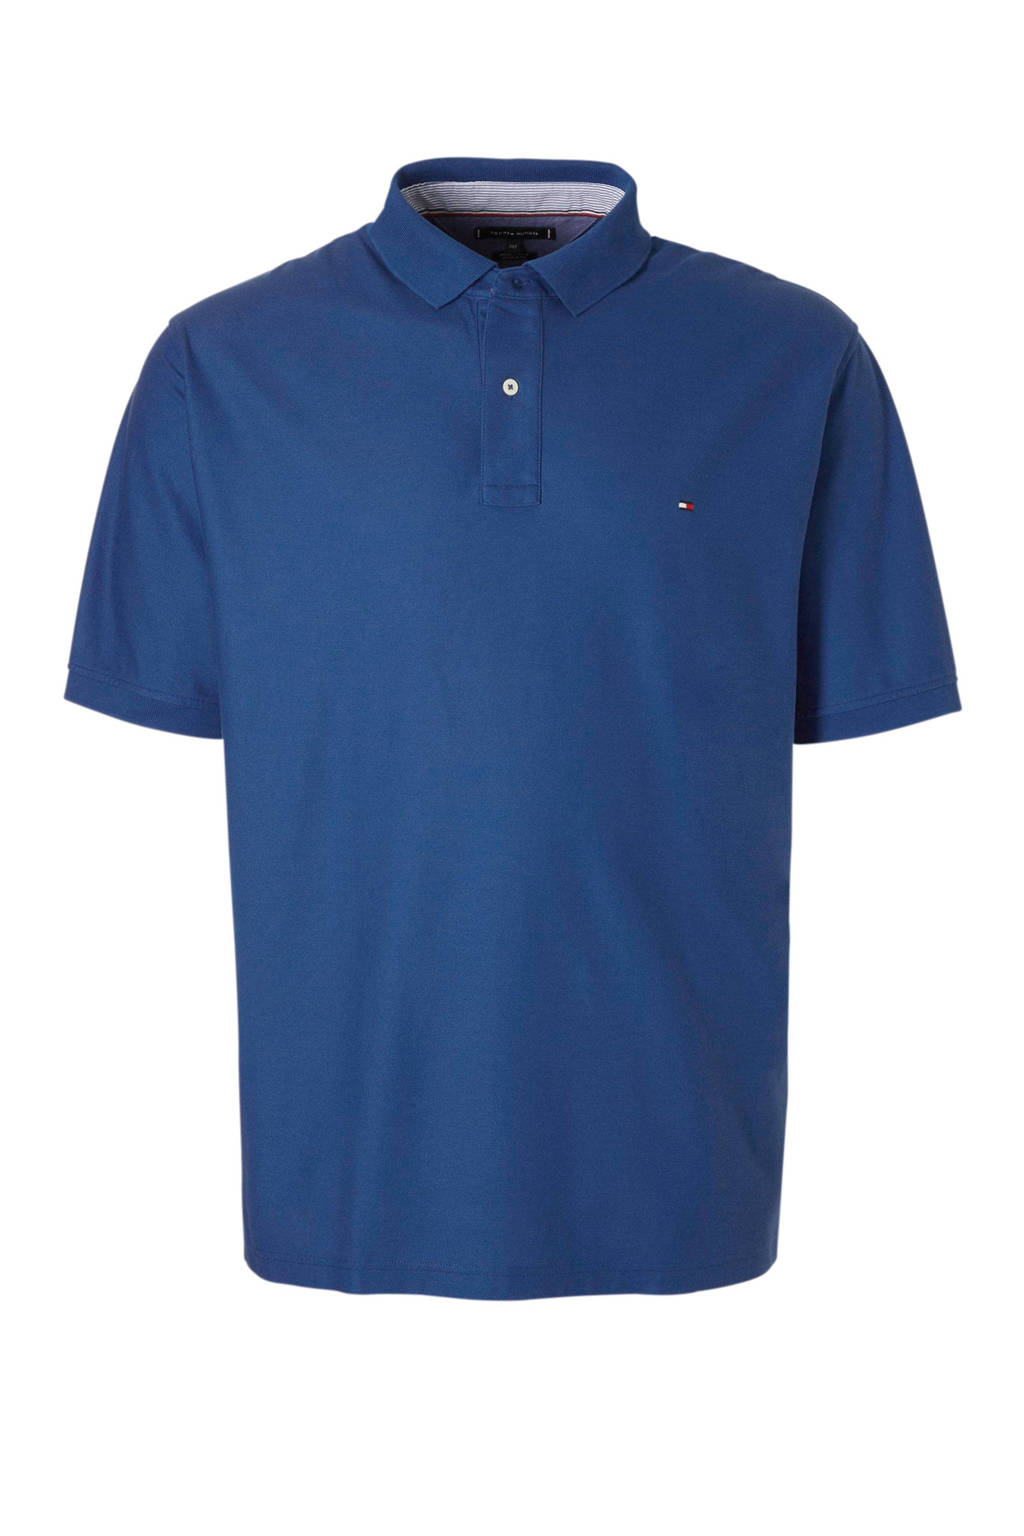 Tommy Hilfiger Big & Tall +size polo met logo, Donkerblauw